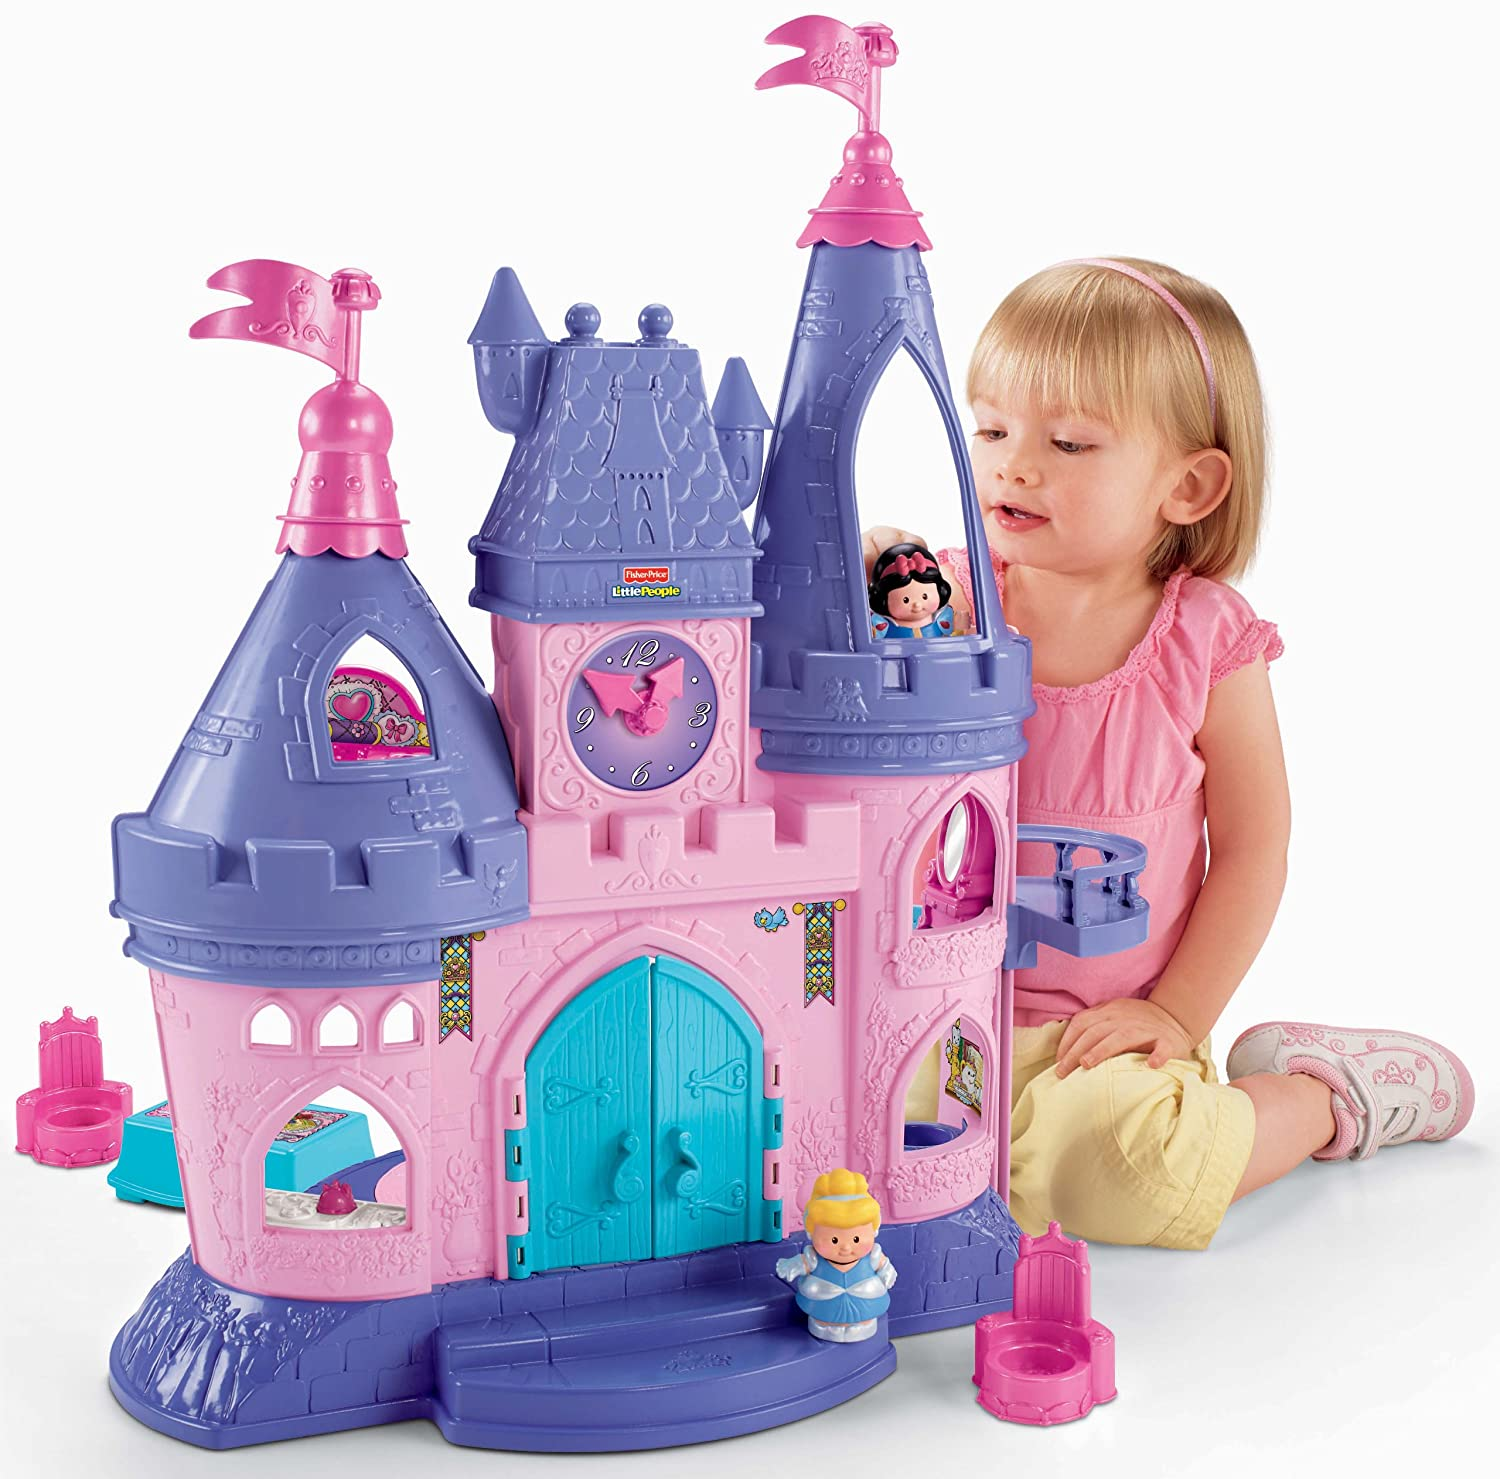 Best Toys Age 4 : Christmas gifts hot toys for toddler girls ages